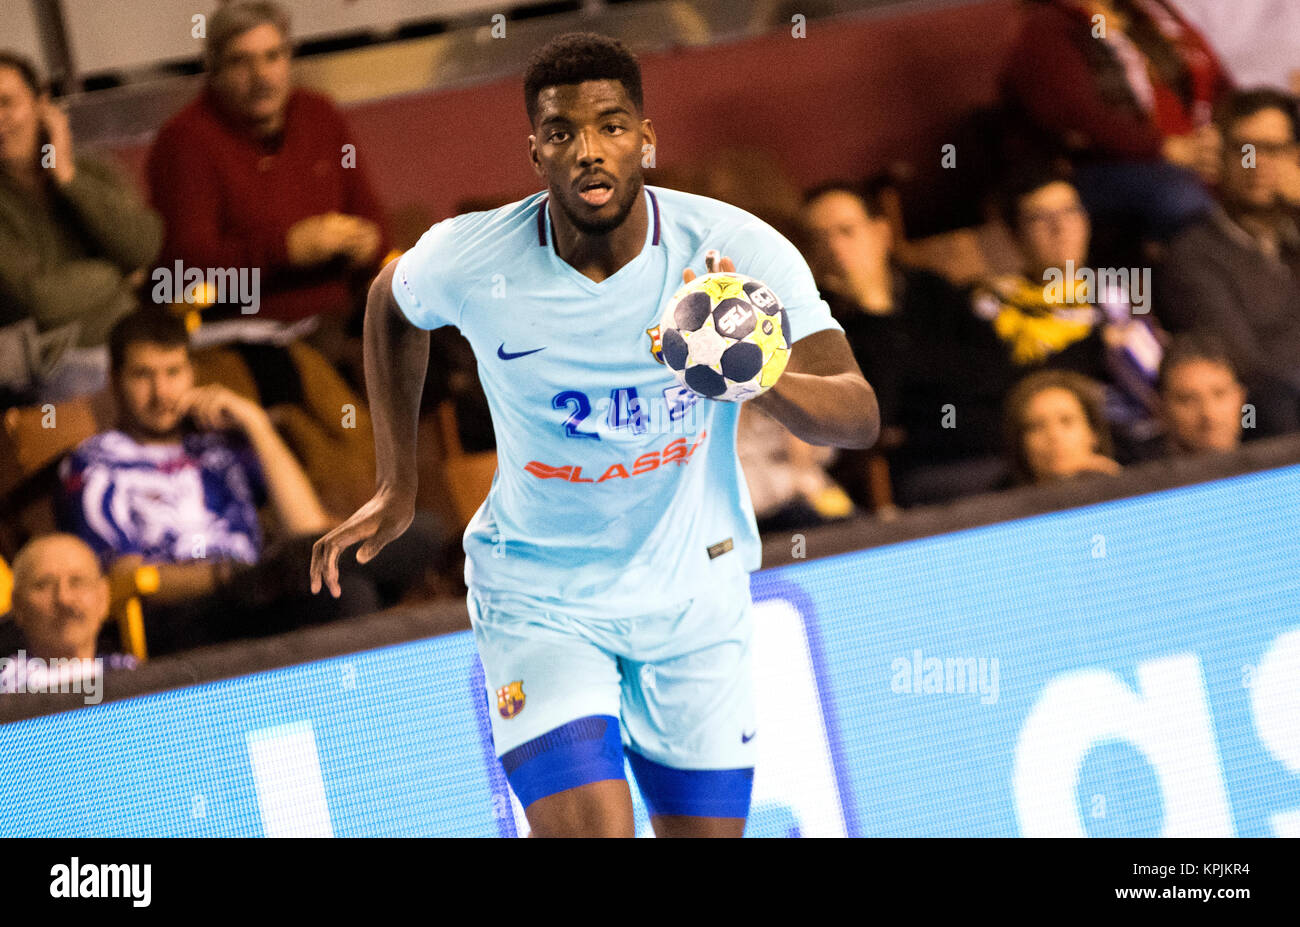 Leon, Spain. 16th December, 2017. Dika Mem (FC Barcelona) in action during the handball match of 2017/2018 Spanish - Stock Image